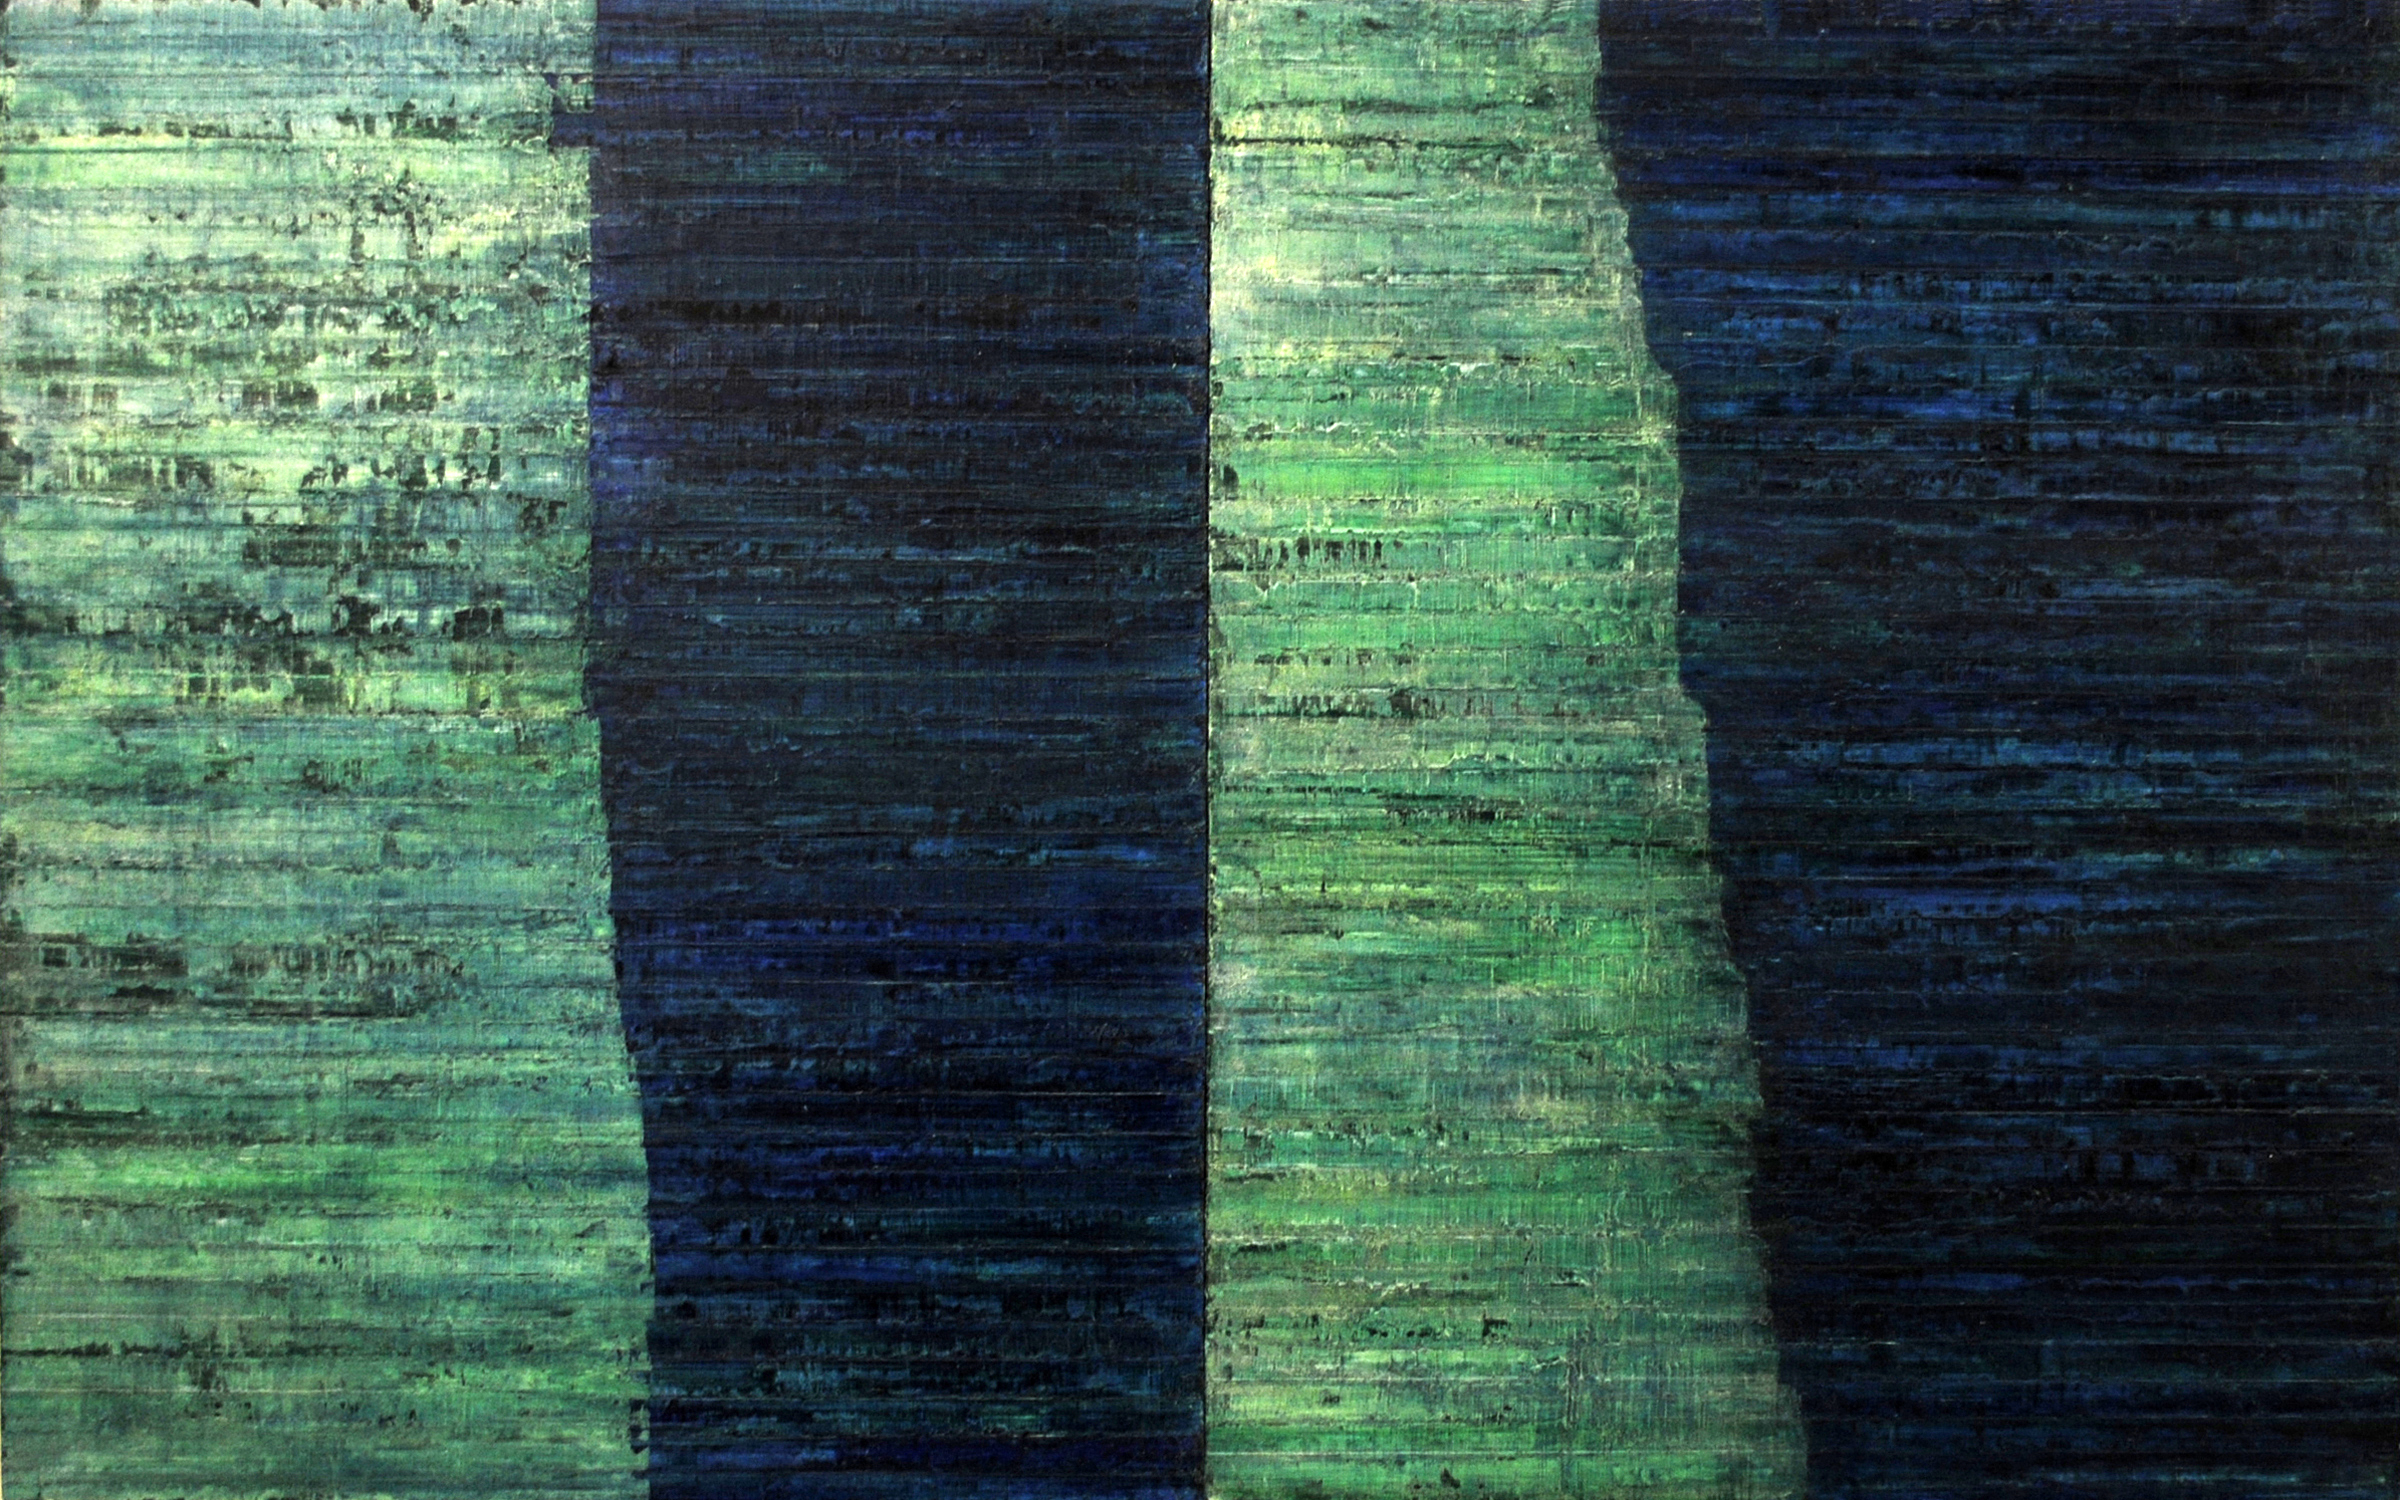 Linea Terminale: 3.10, 2010, Oil on linen over panels, 20 x 36 inches.